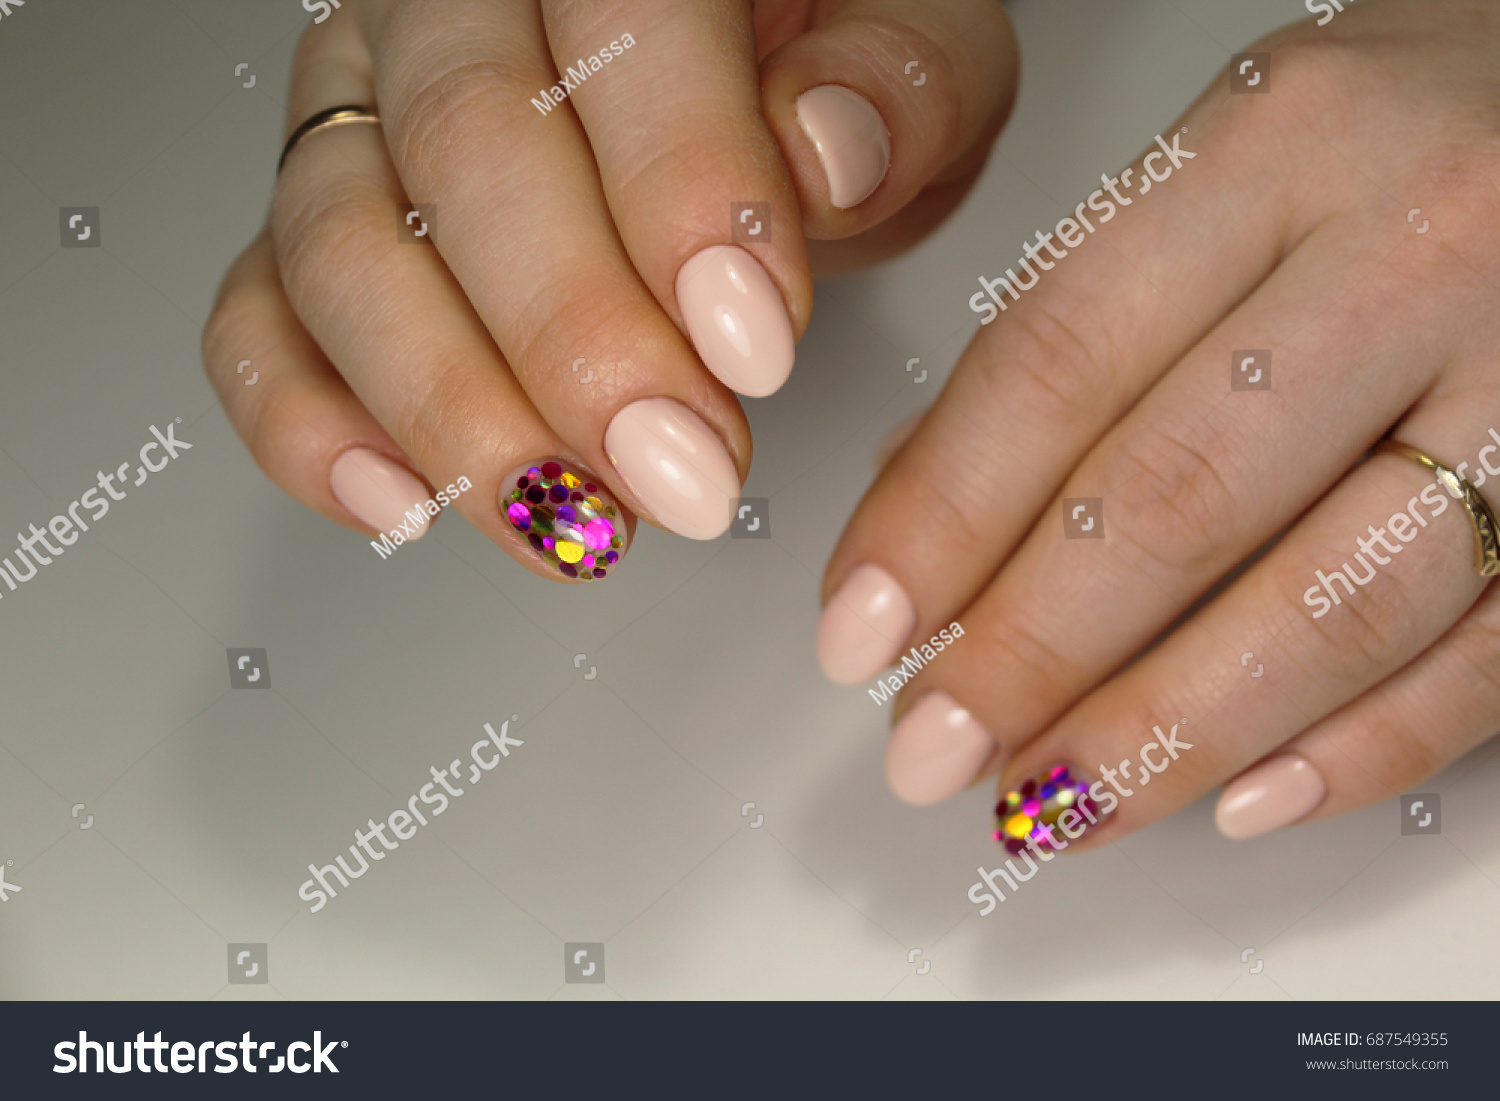 Tender Design Manicure Short Nails Stock Photo (Royalty Free ...